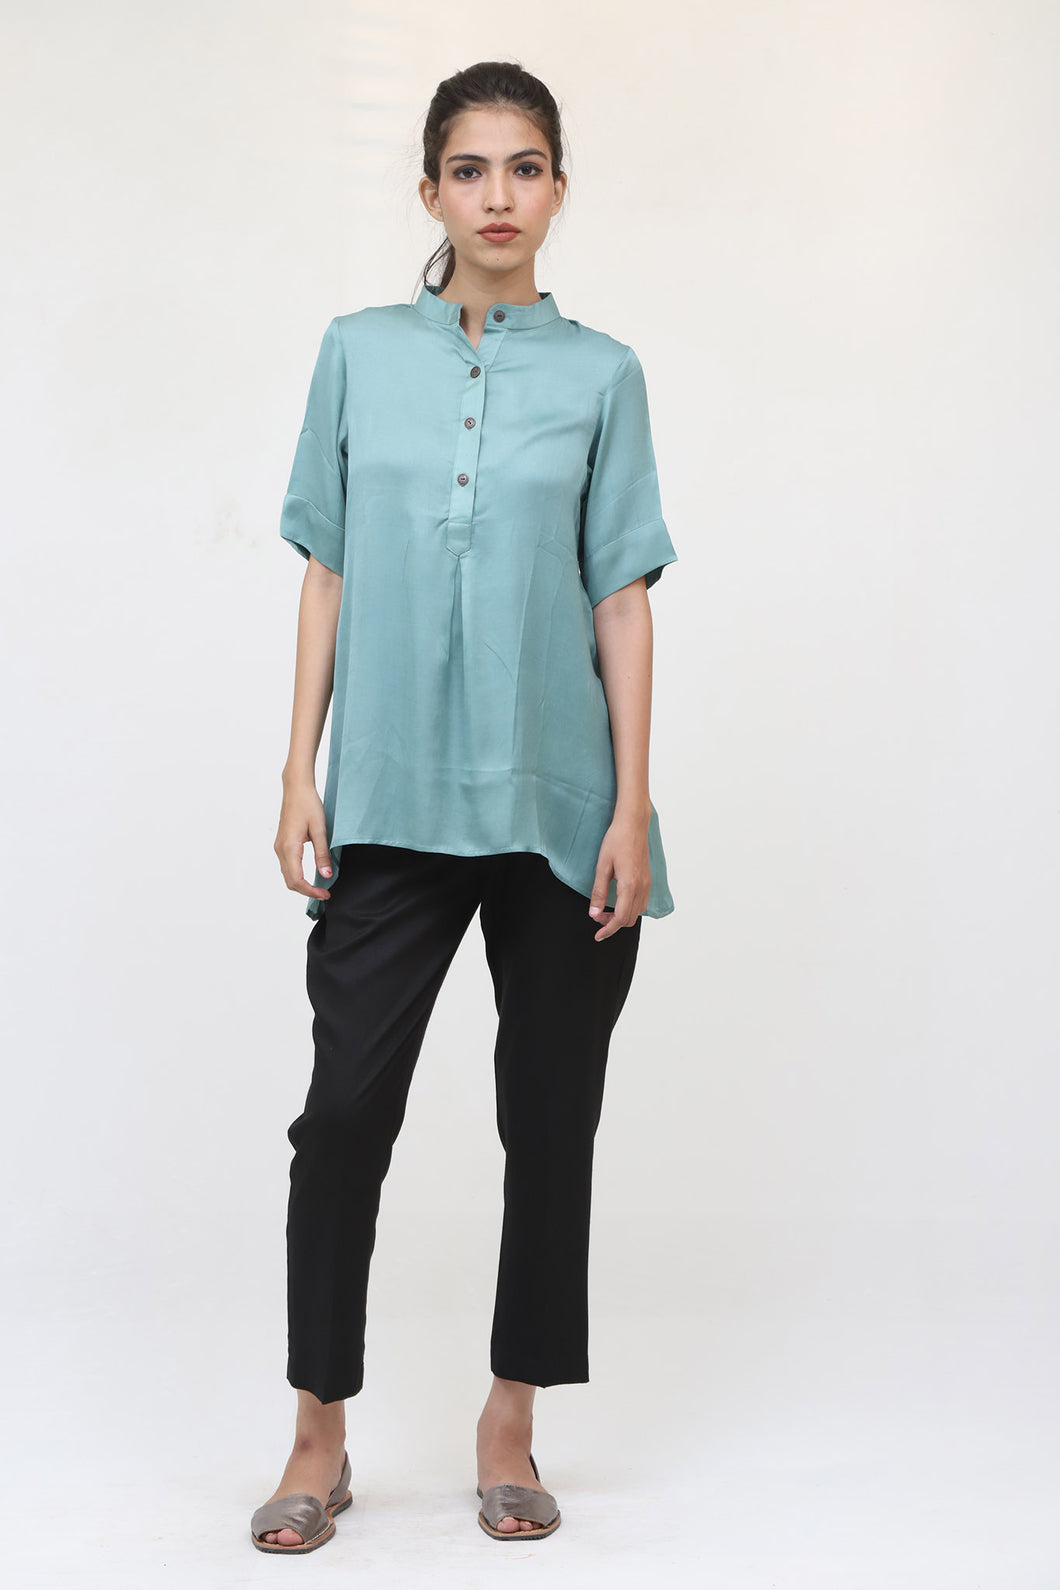 Mint Green Short Sleeve Top